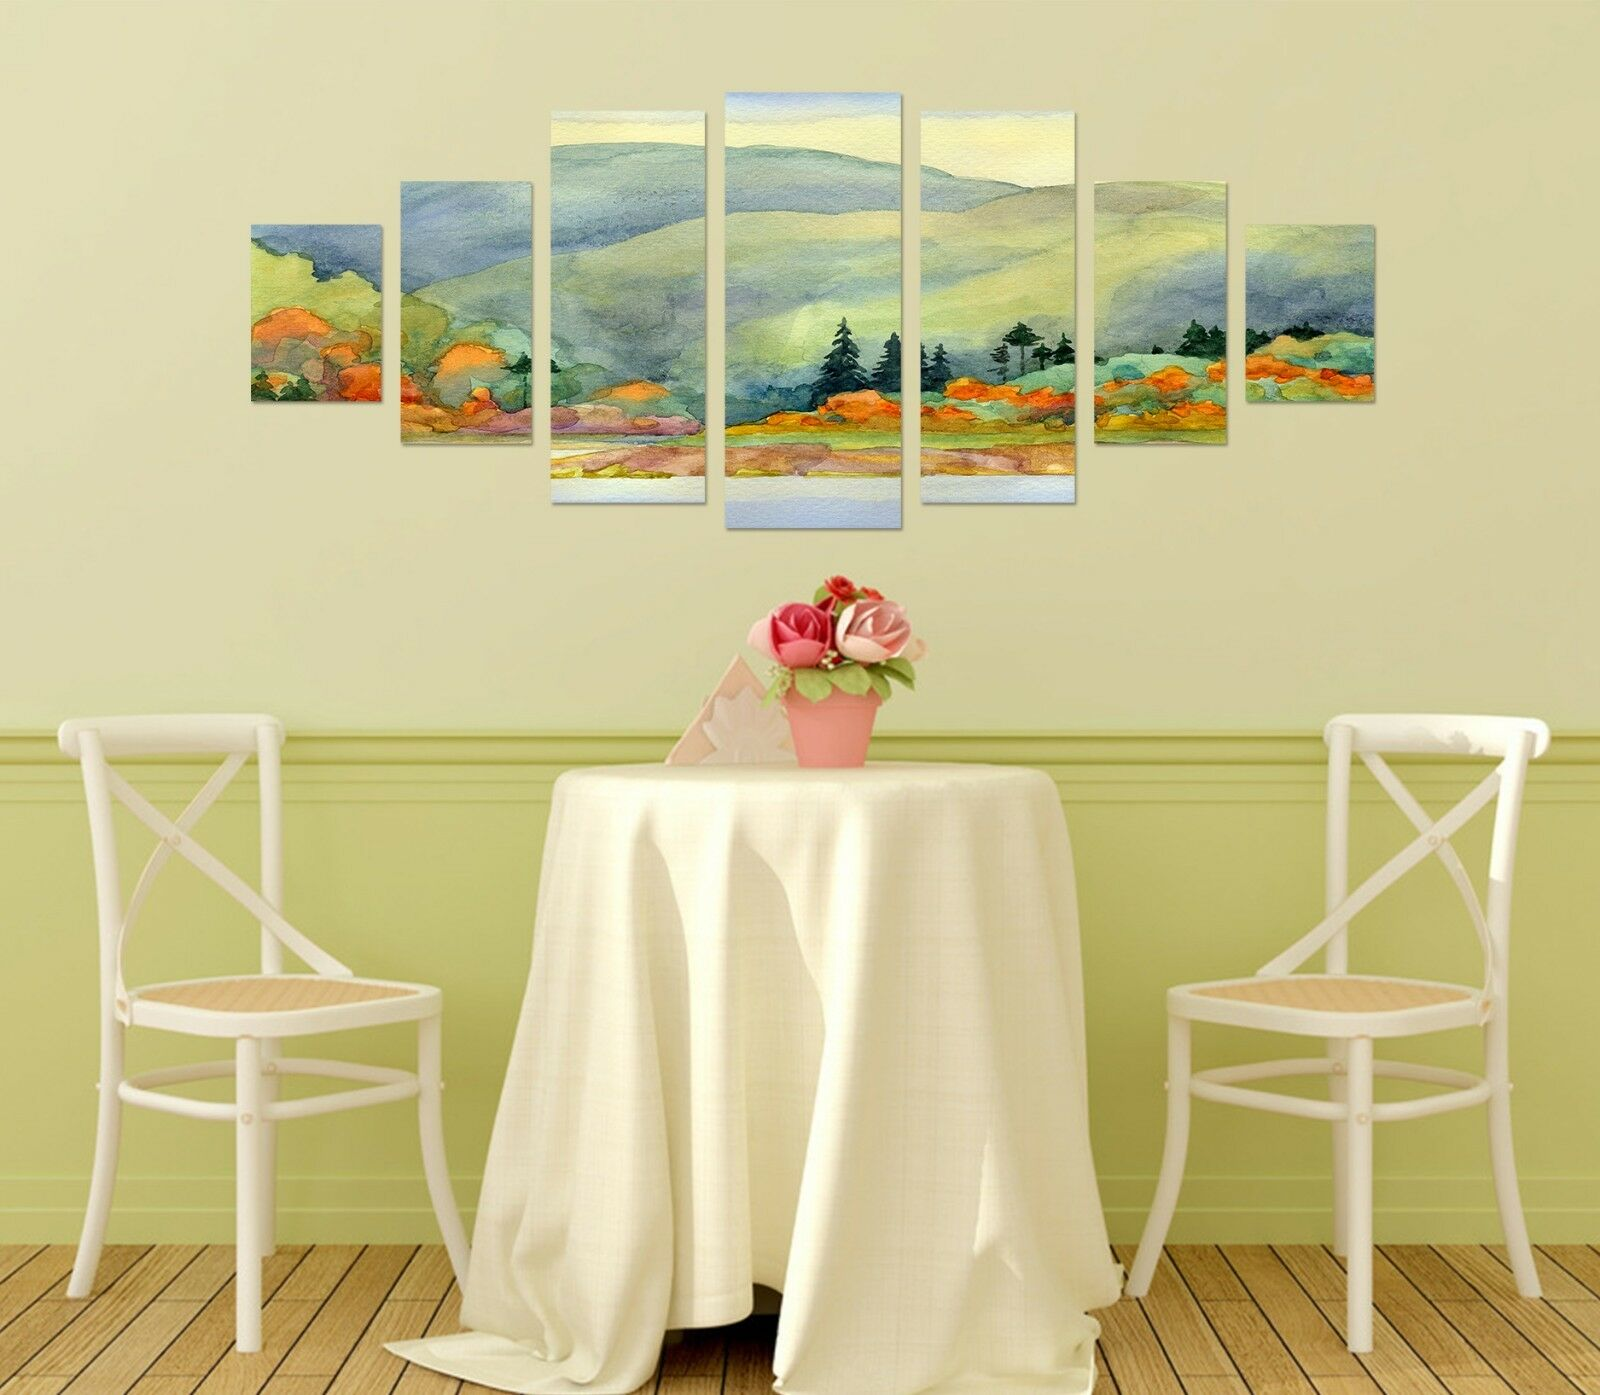 3D Painting Mountain 66 Unframed Print Wall Paper Decal Wall Deco Indoor AJ Wall